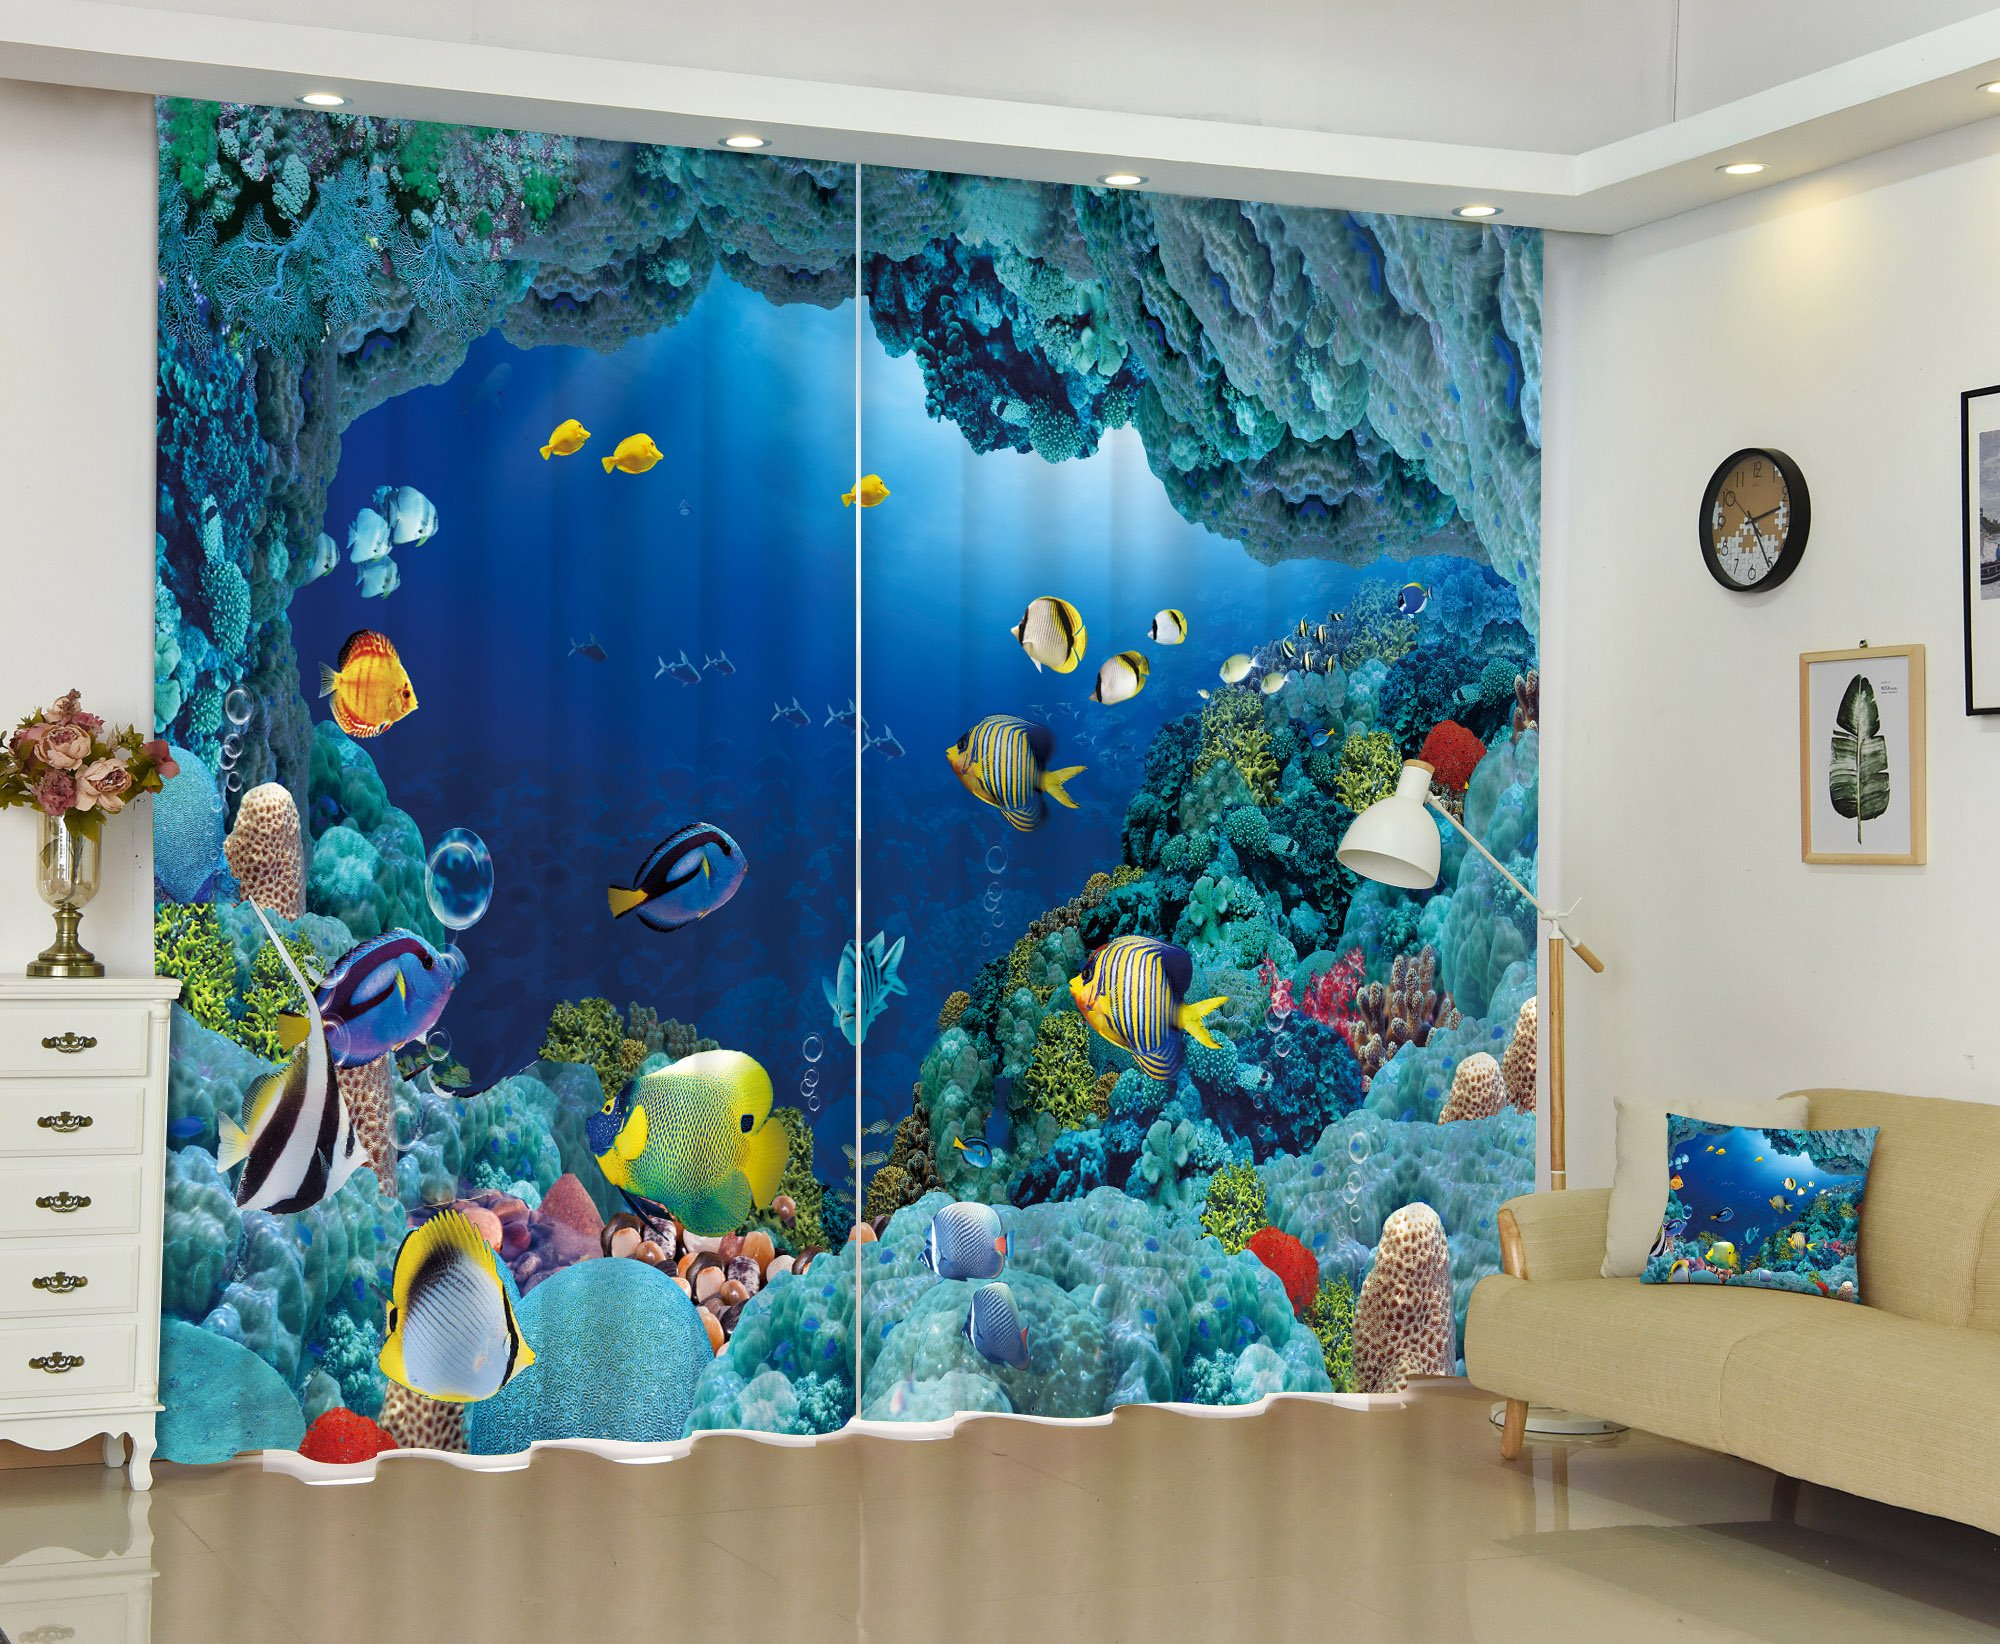 Living Room Bedroom Decor Window Treatment Curtains Drapes by LB, Printed Ocean Theme Picture Home Decorations, Colourful Fish in Blue Underwater Sea World, 2 Panels Set,104W X 84L Inches